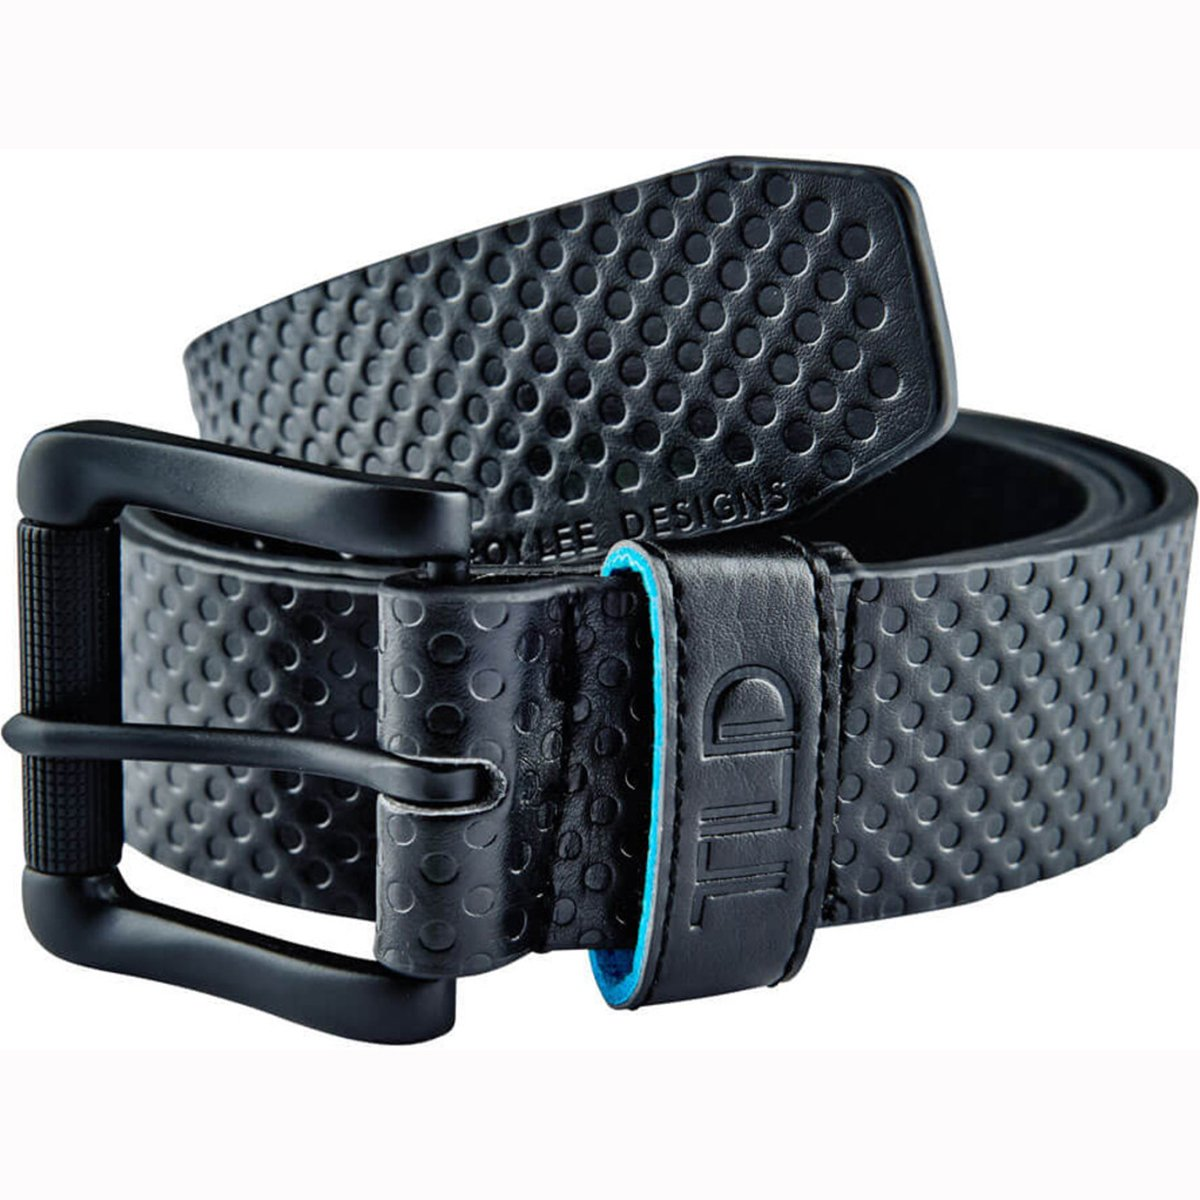 Troy Lee Designs Grip Belt (BLACK/TURQUOISE) by Troy Lee Designs